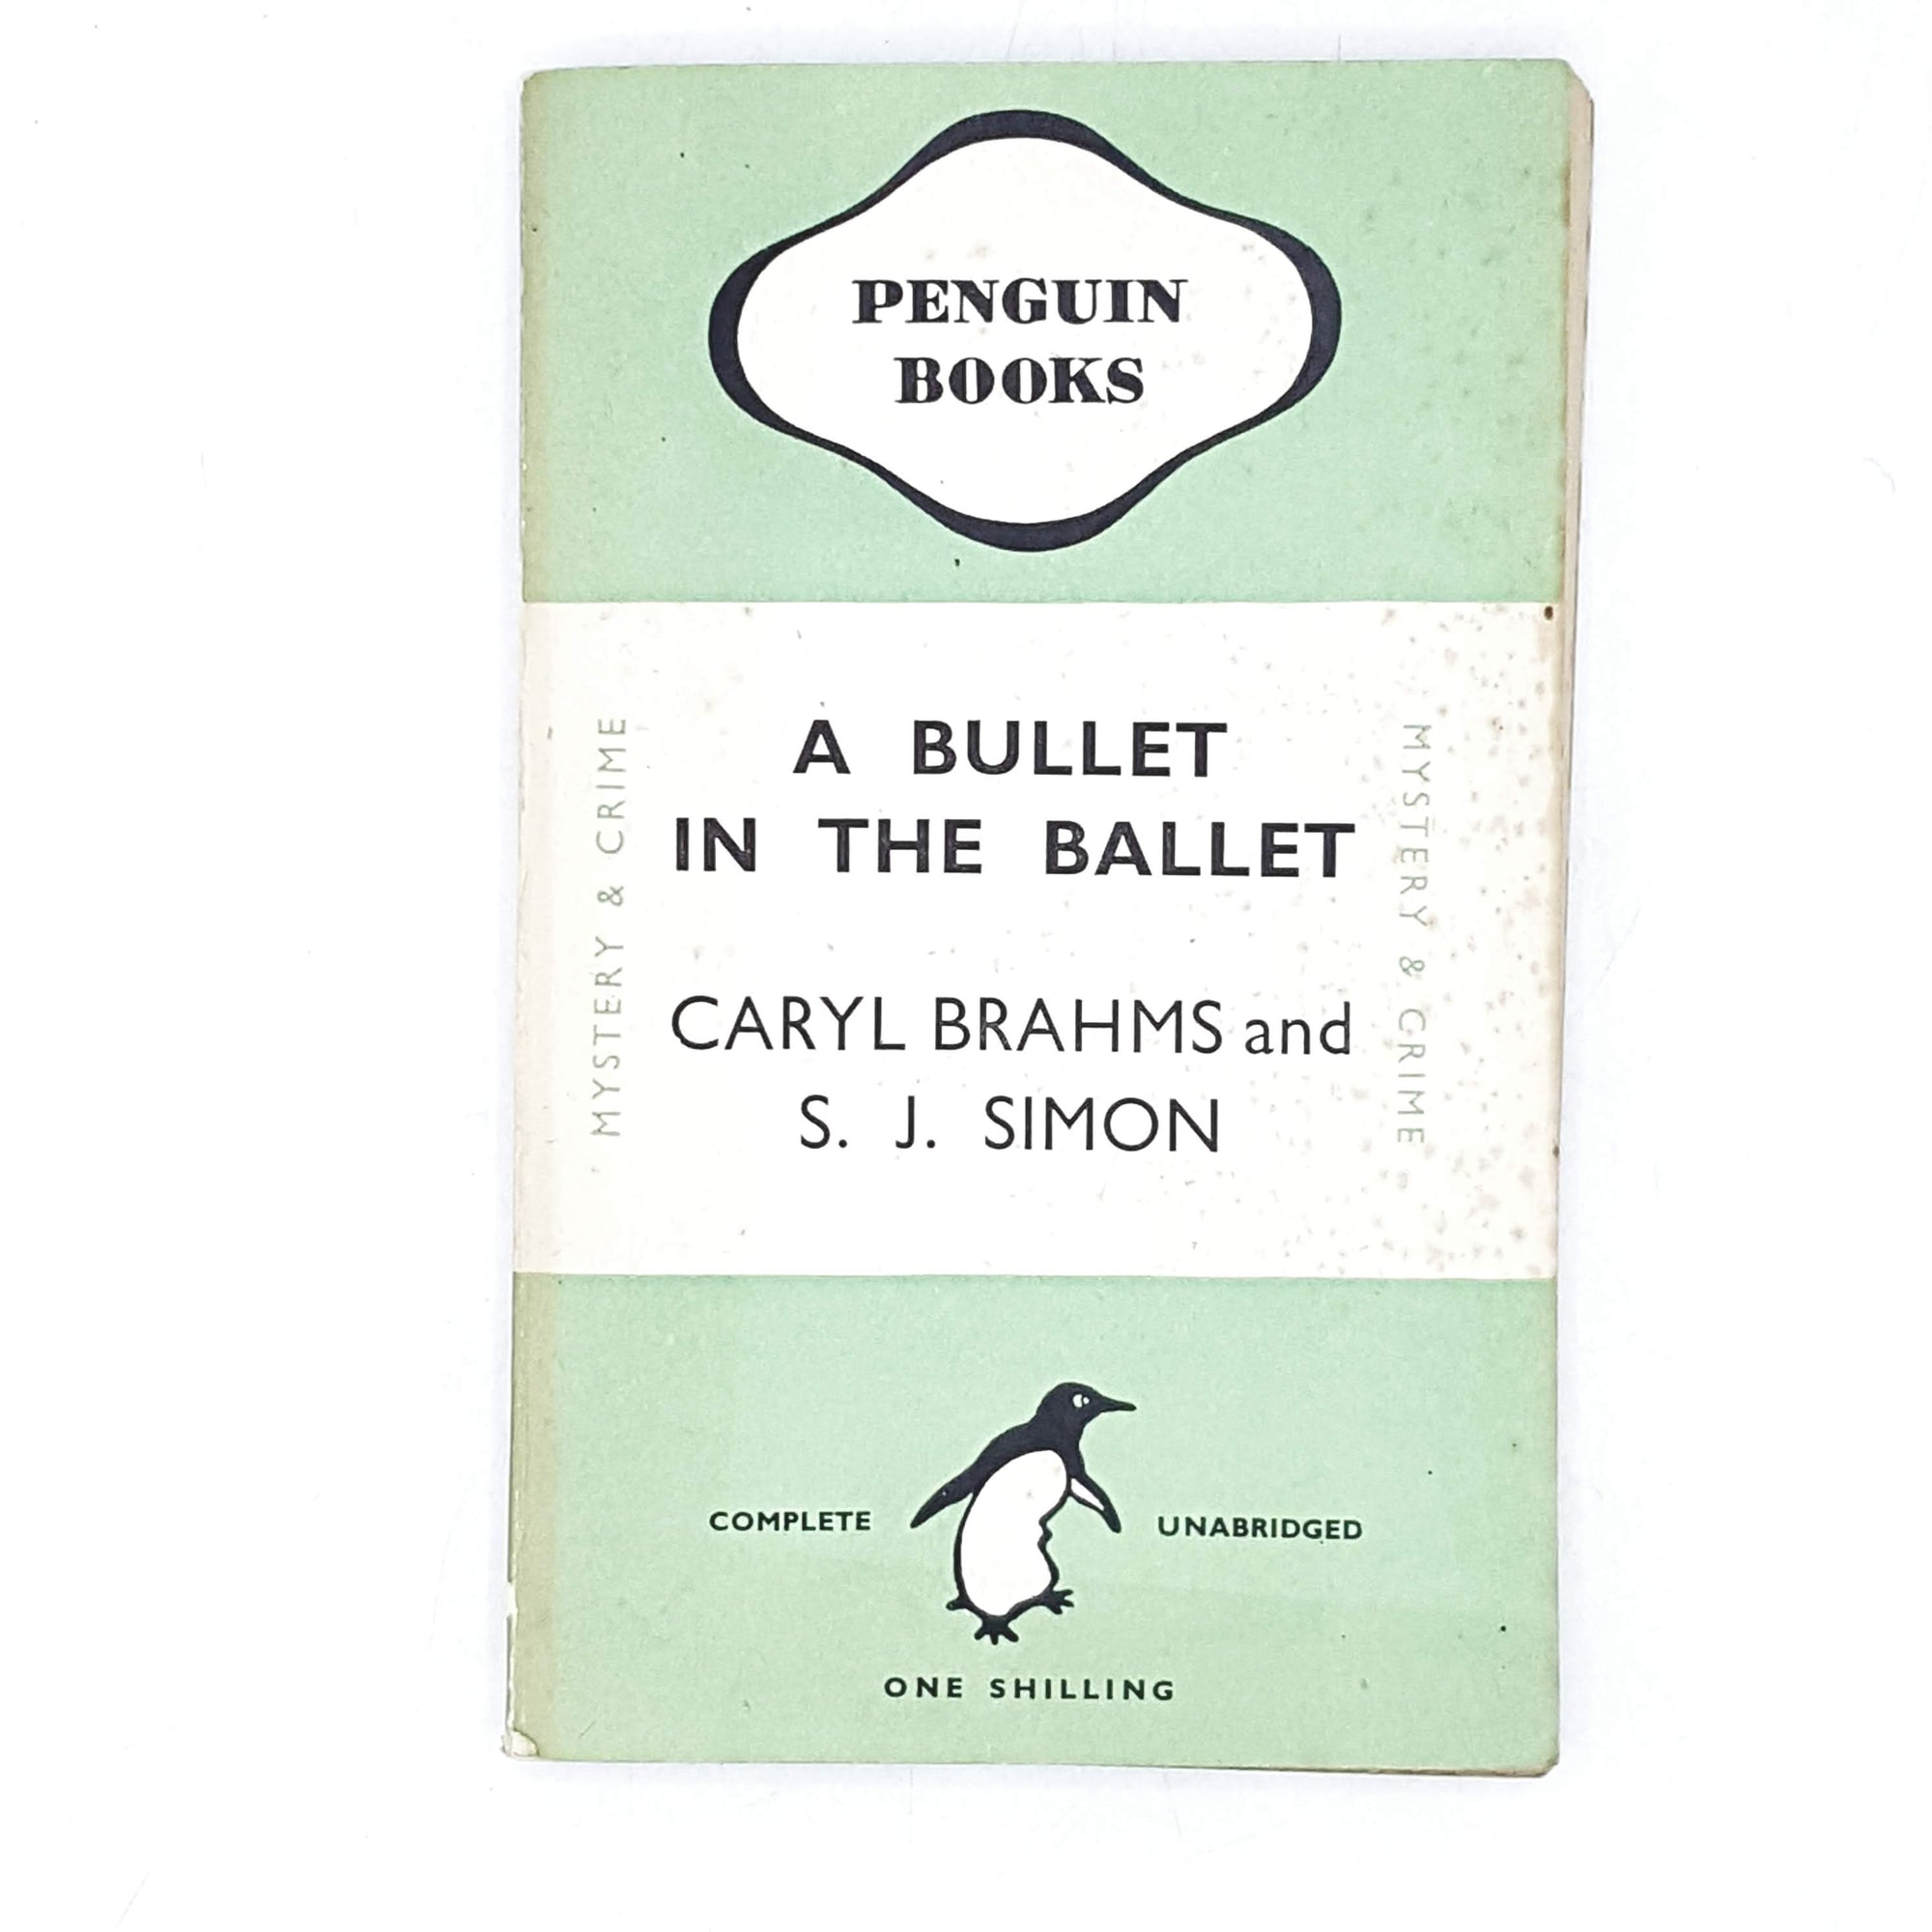 vintage-penguin-a-bullet-in-the-ballet-by-caryl-brahms-and-s-j-simon-1946-green-antique-books-country-house-library